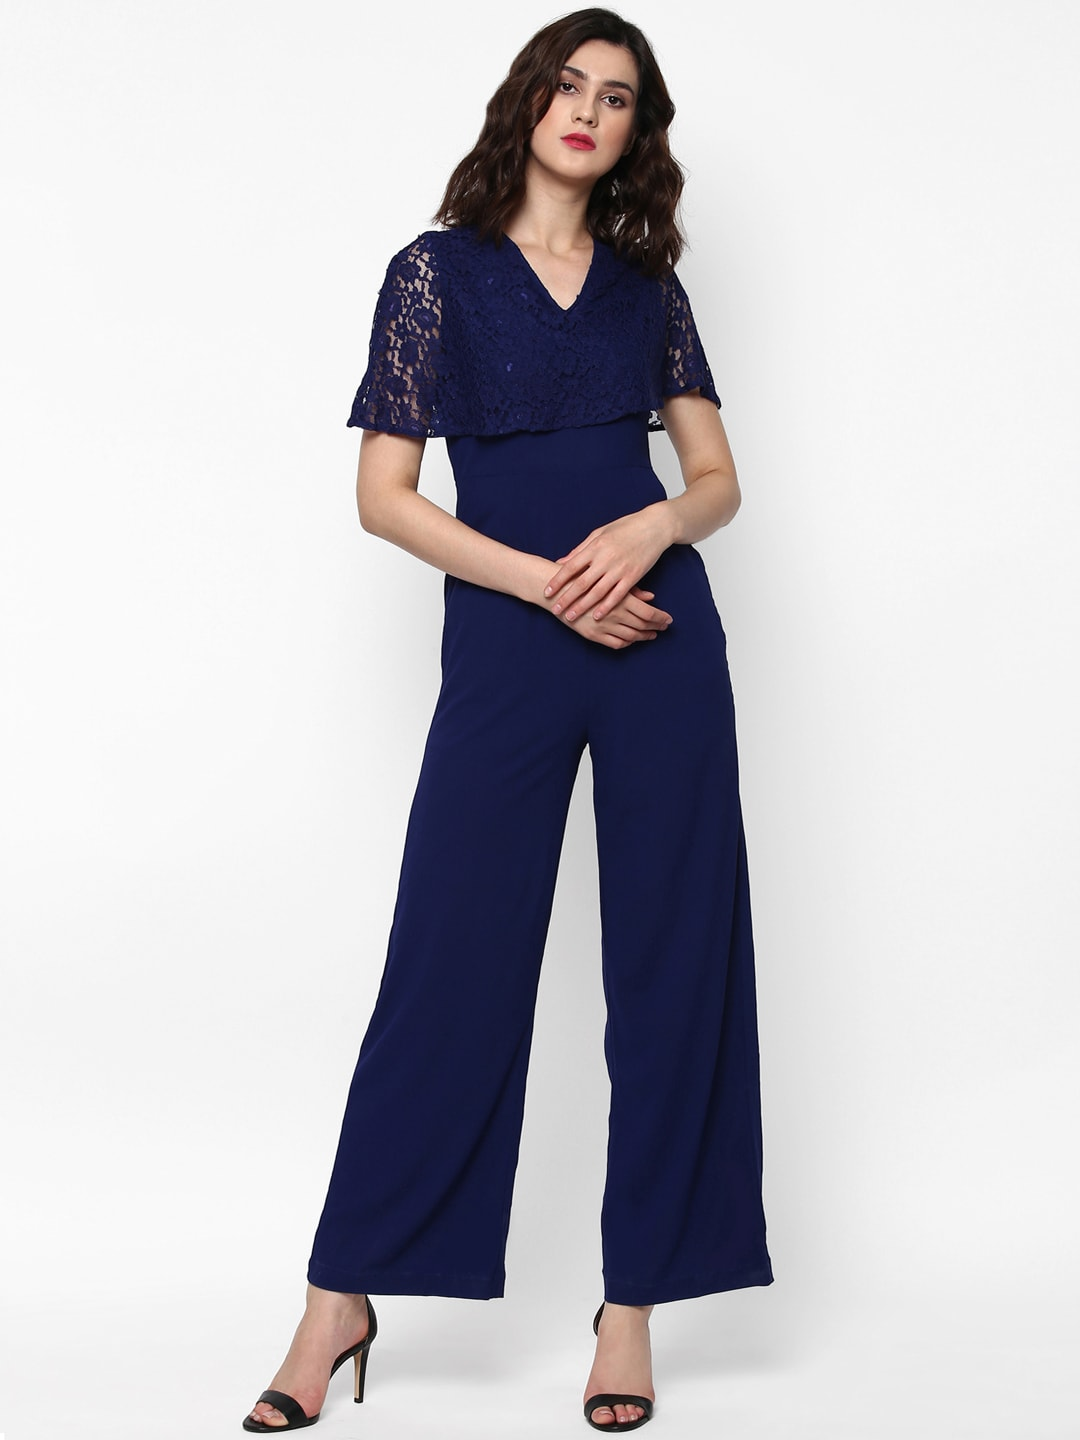 7728690e87b Jumpsuits - Buy Jumpsuits For Women